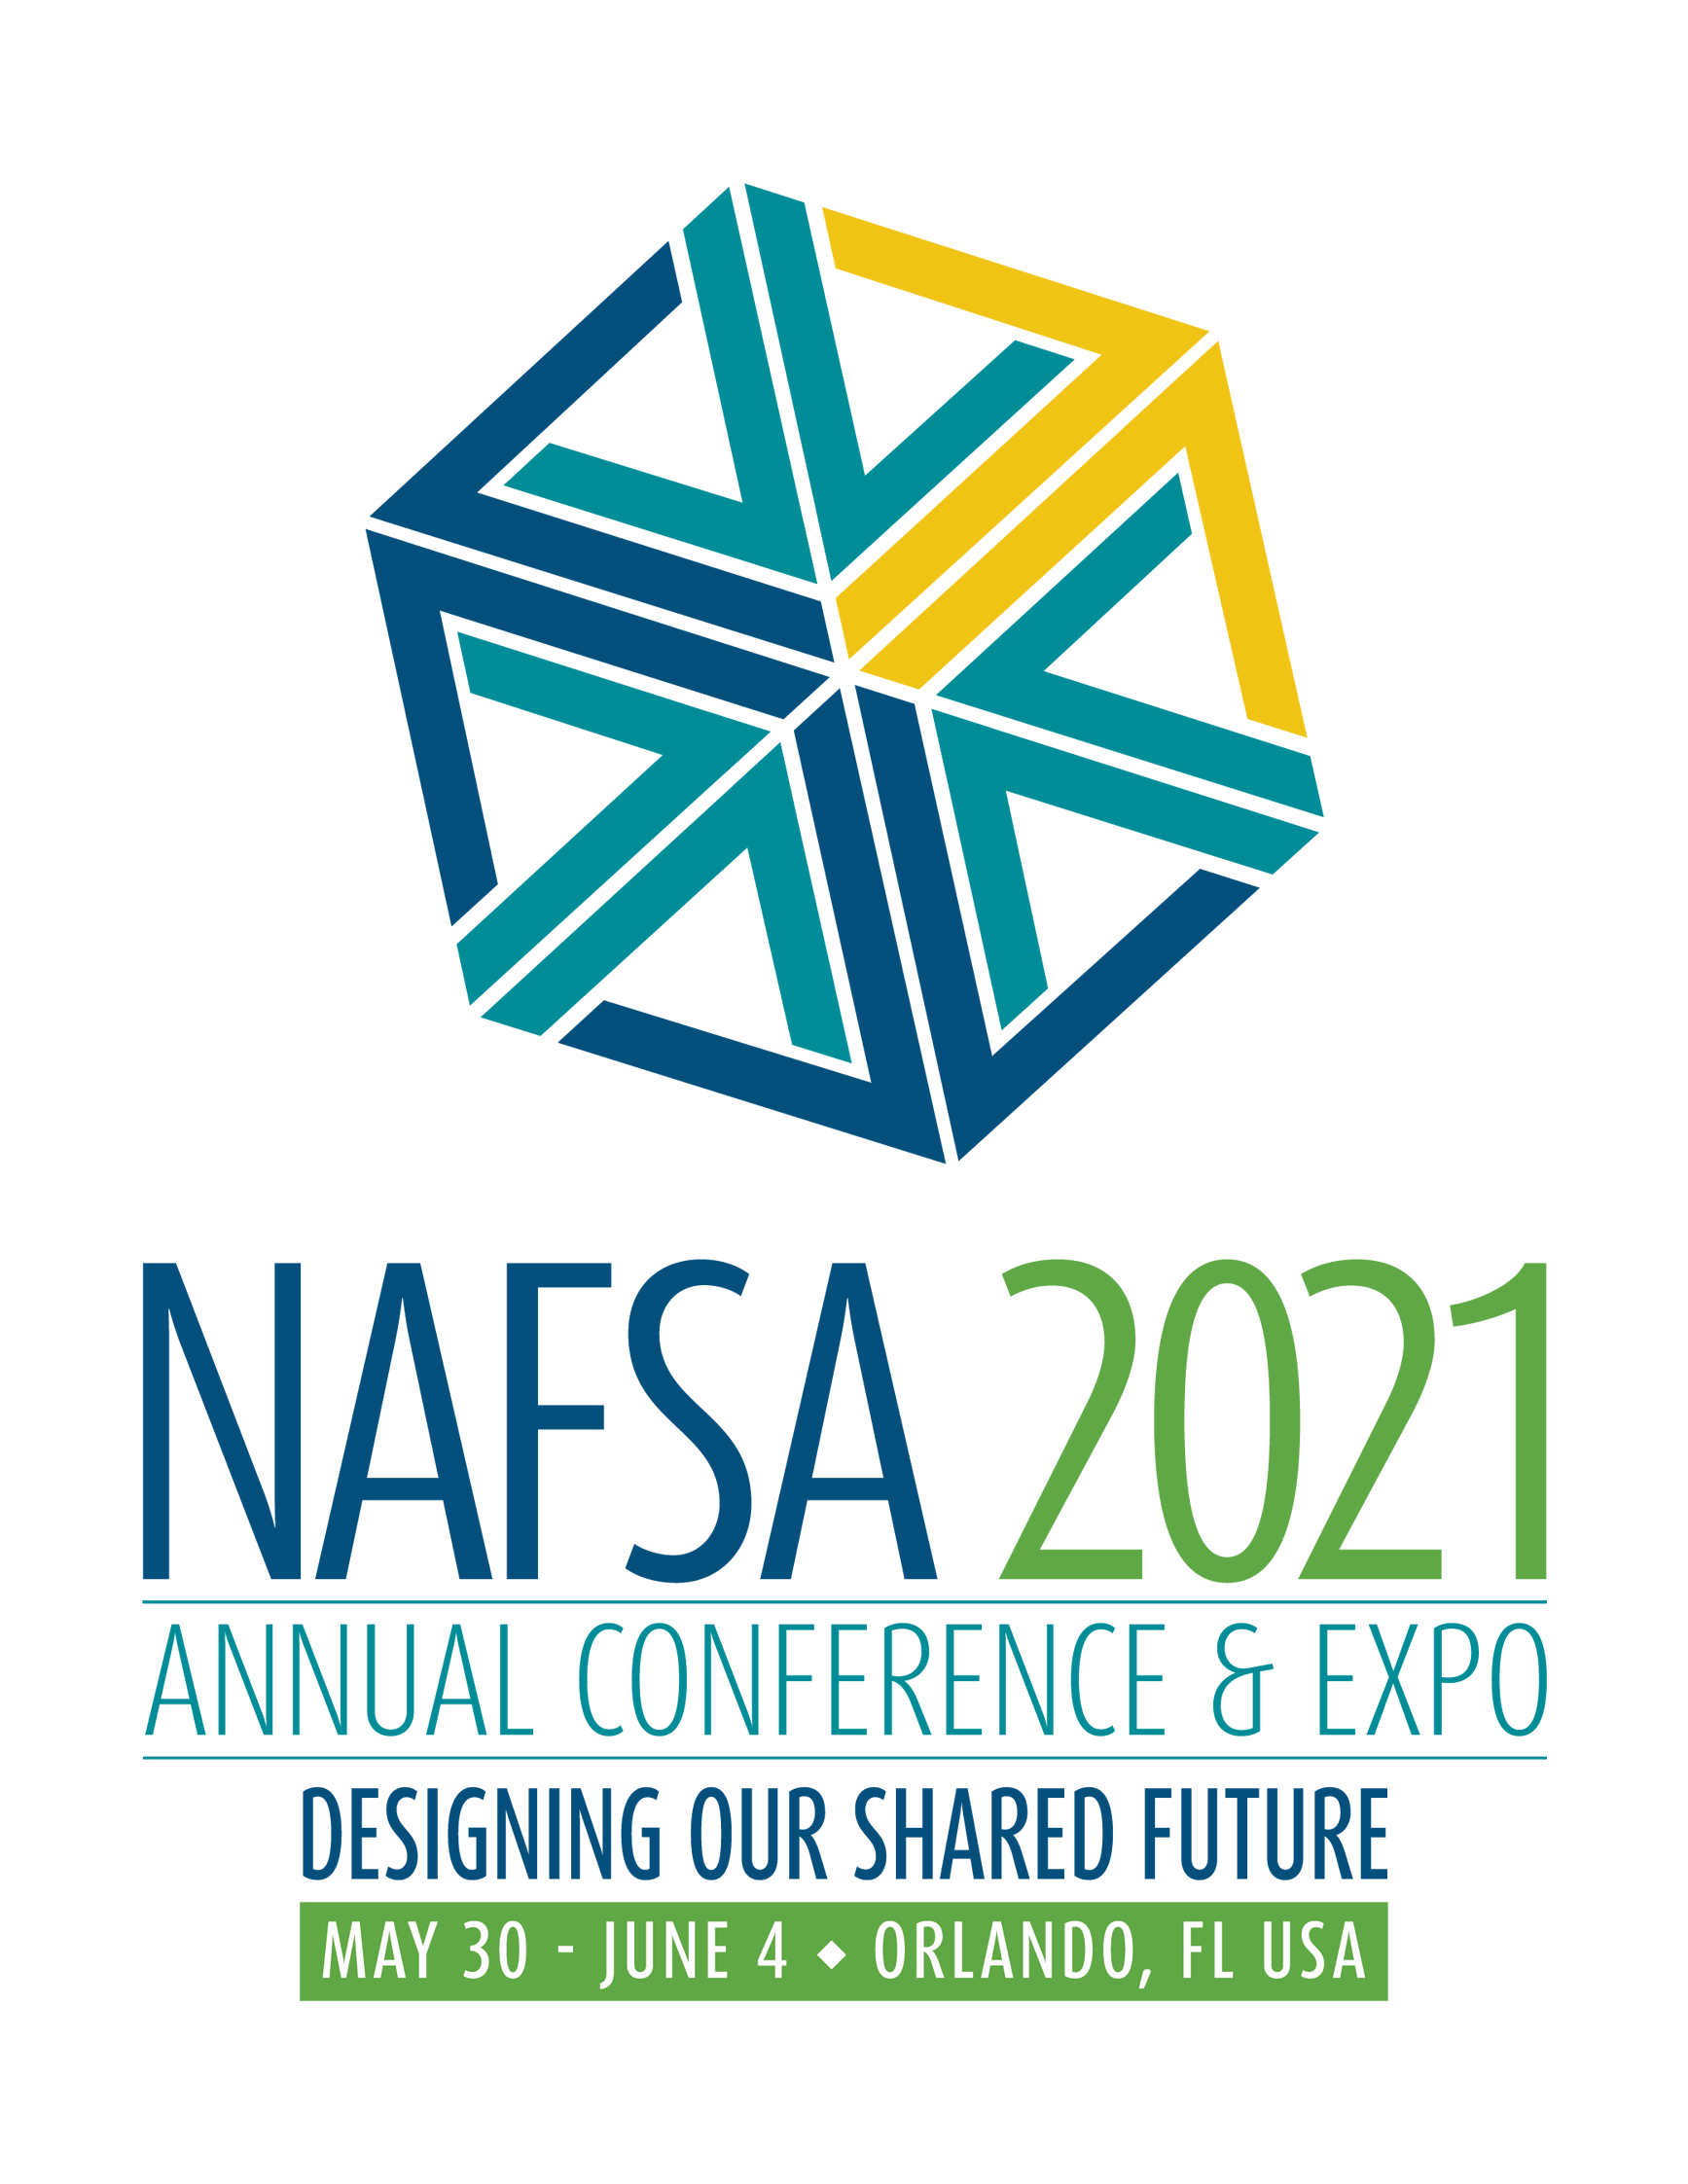 NAFSA 2021 Annual Conference & Expo